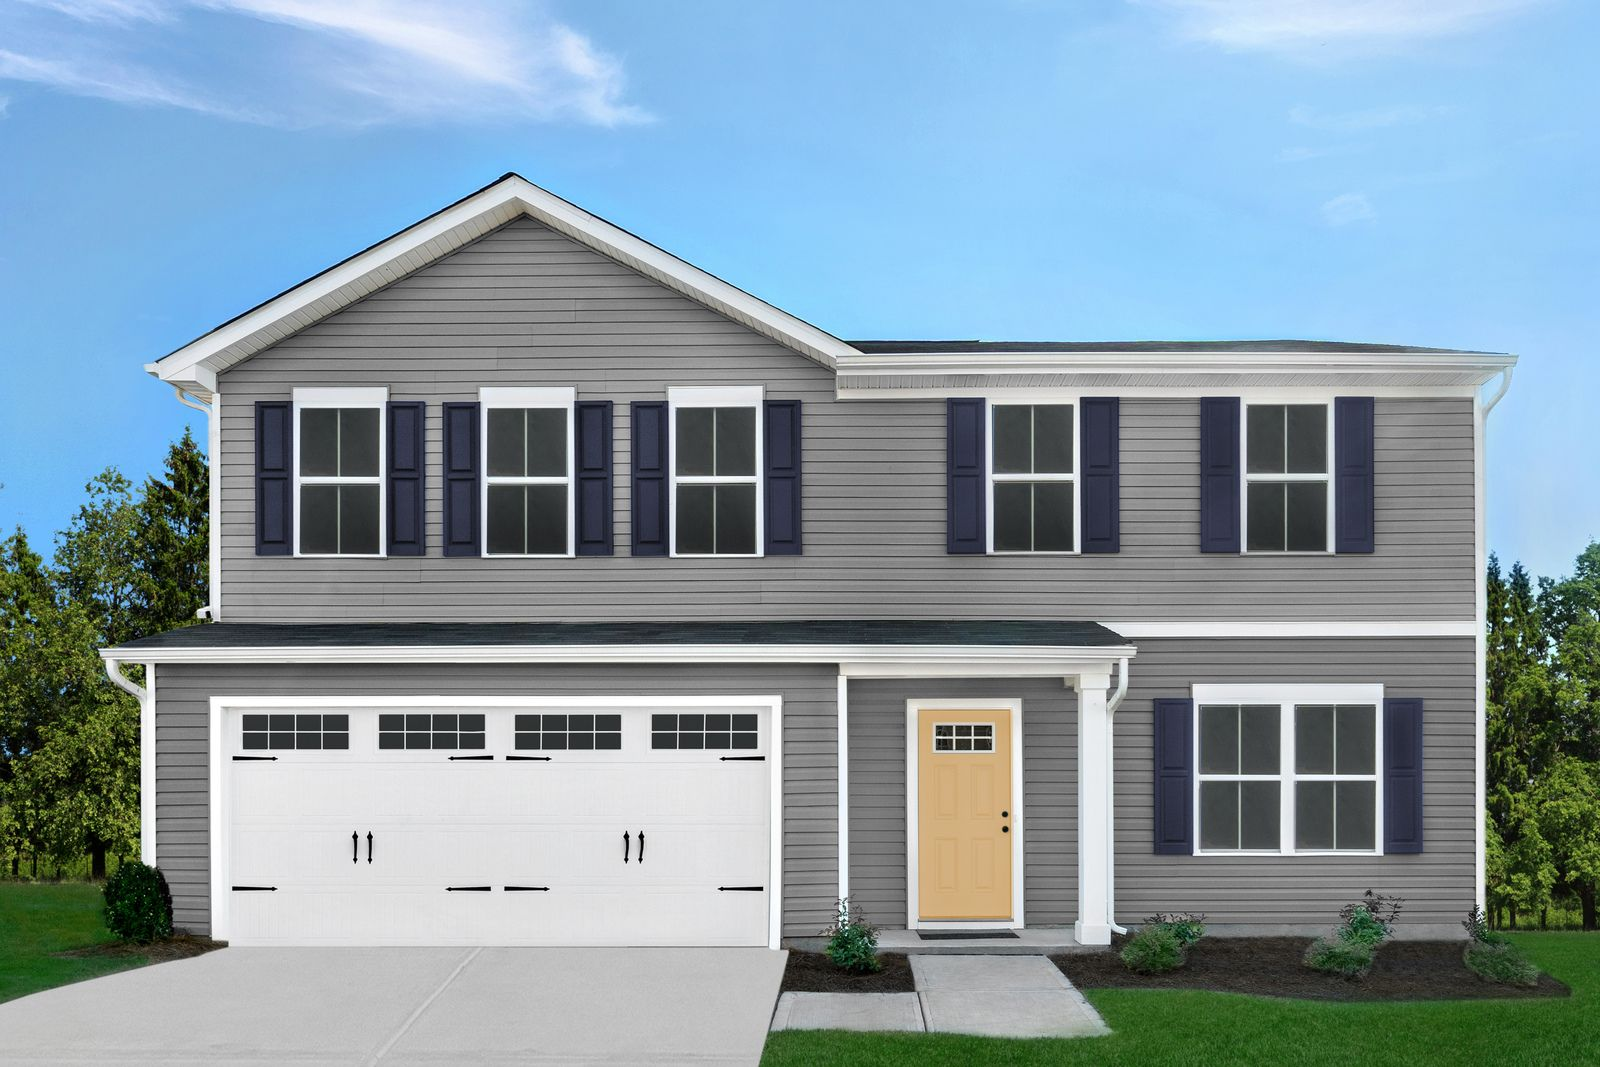 Summerfield: NEW HOMES COMING SOON TO BOURBONNAIS:New 2-story and ranch homes off I-57. Located in School District #307 & #258 with basements and all appliances included. Clickhere to join the VIP List!